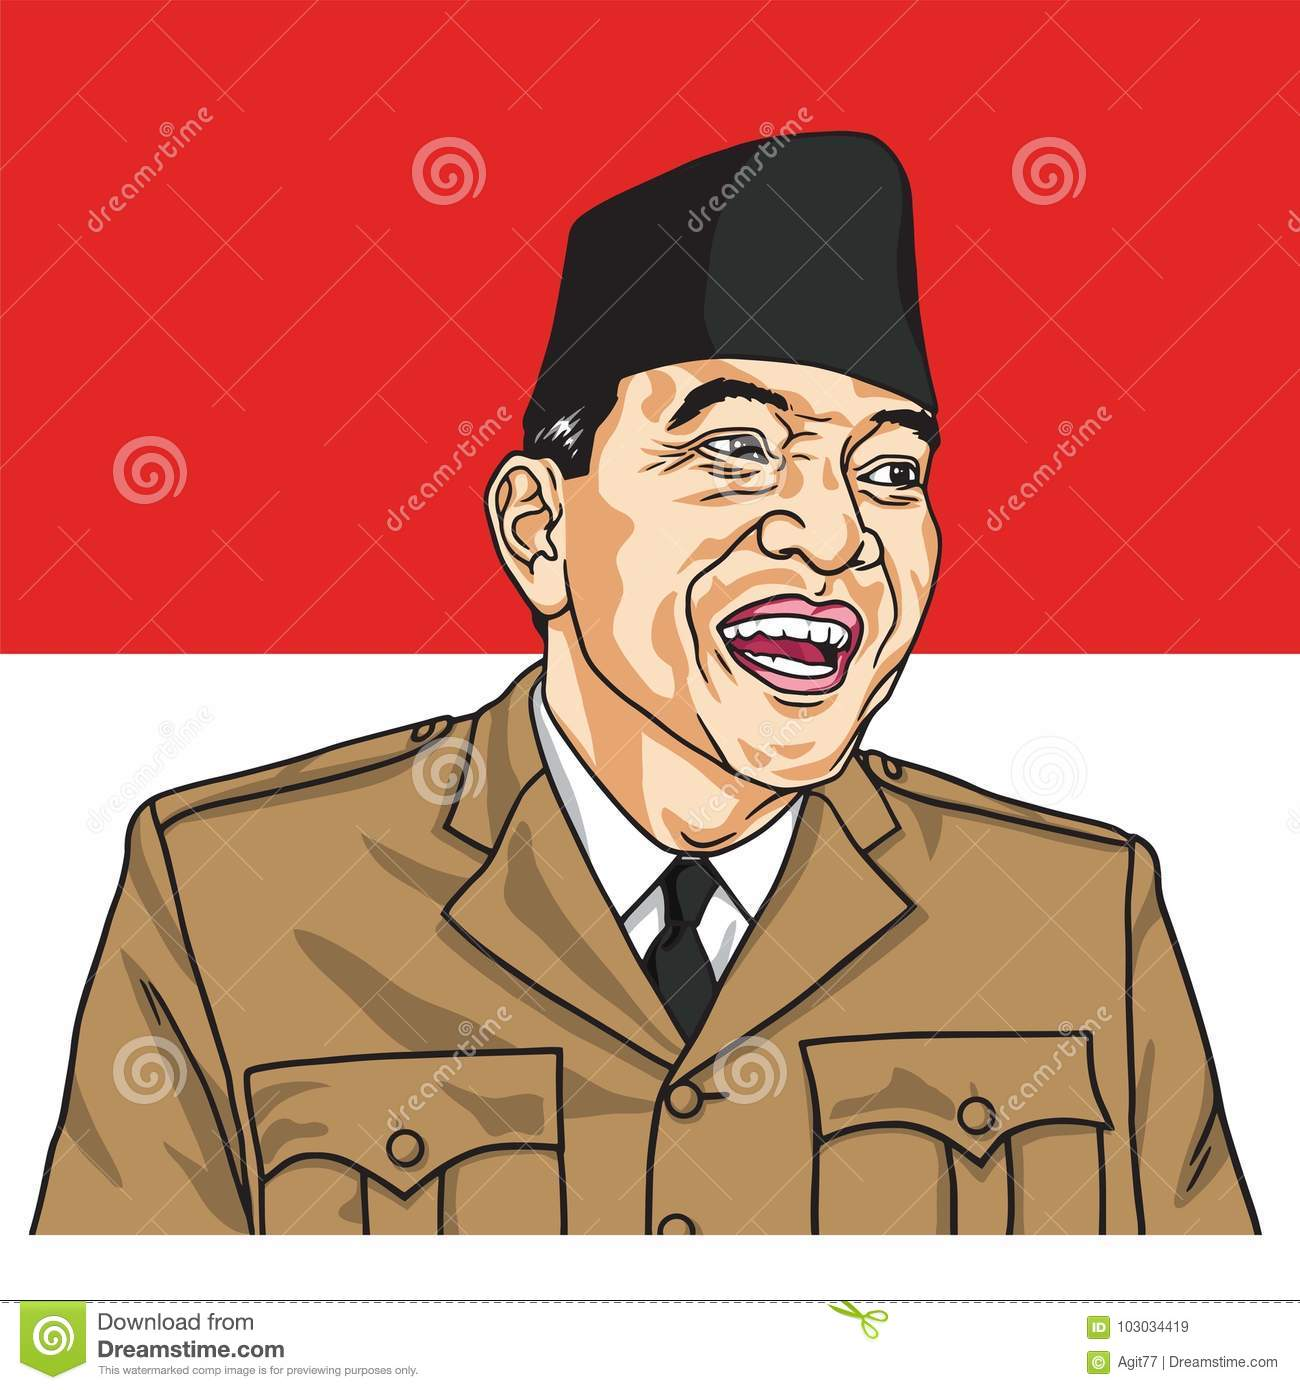 soekarno stock illustrations 26 soekarno stock illustrations vectors clipart dreamstime https www dreamstime com soekarno first president republic indonesia vector portrait indonesian flag background november illustration image103034419